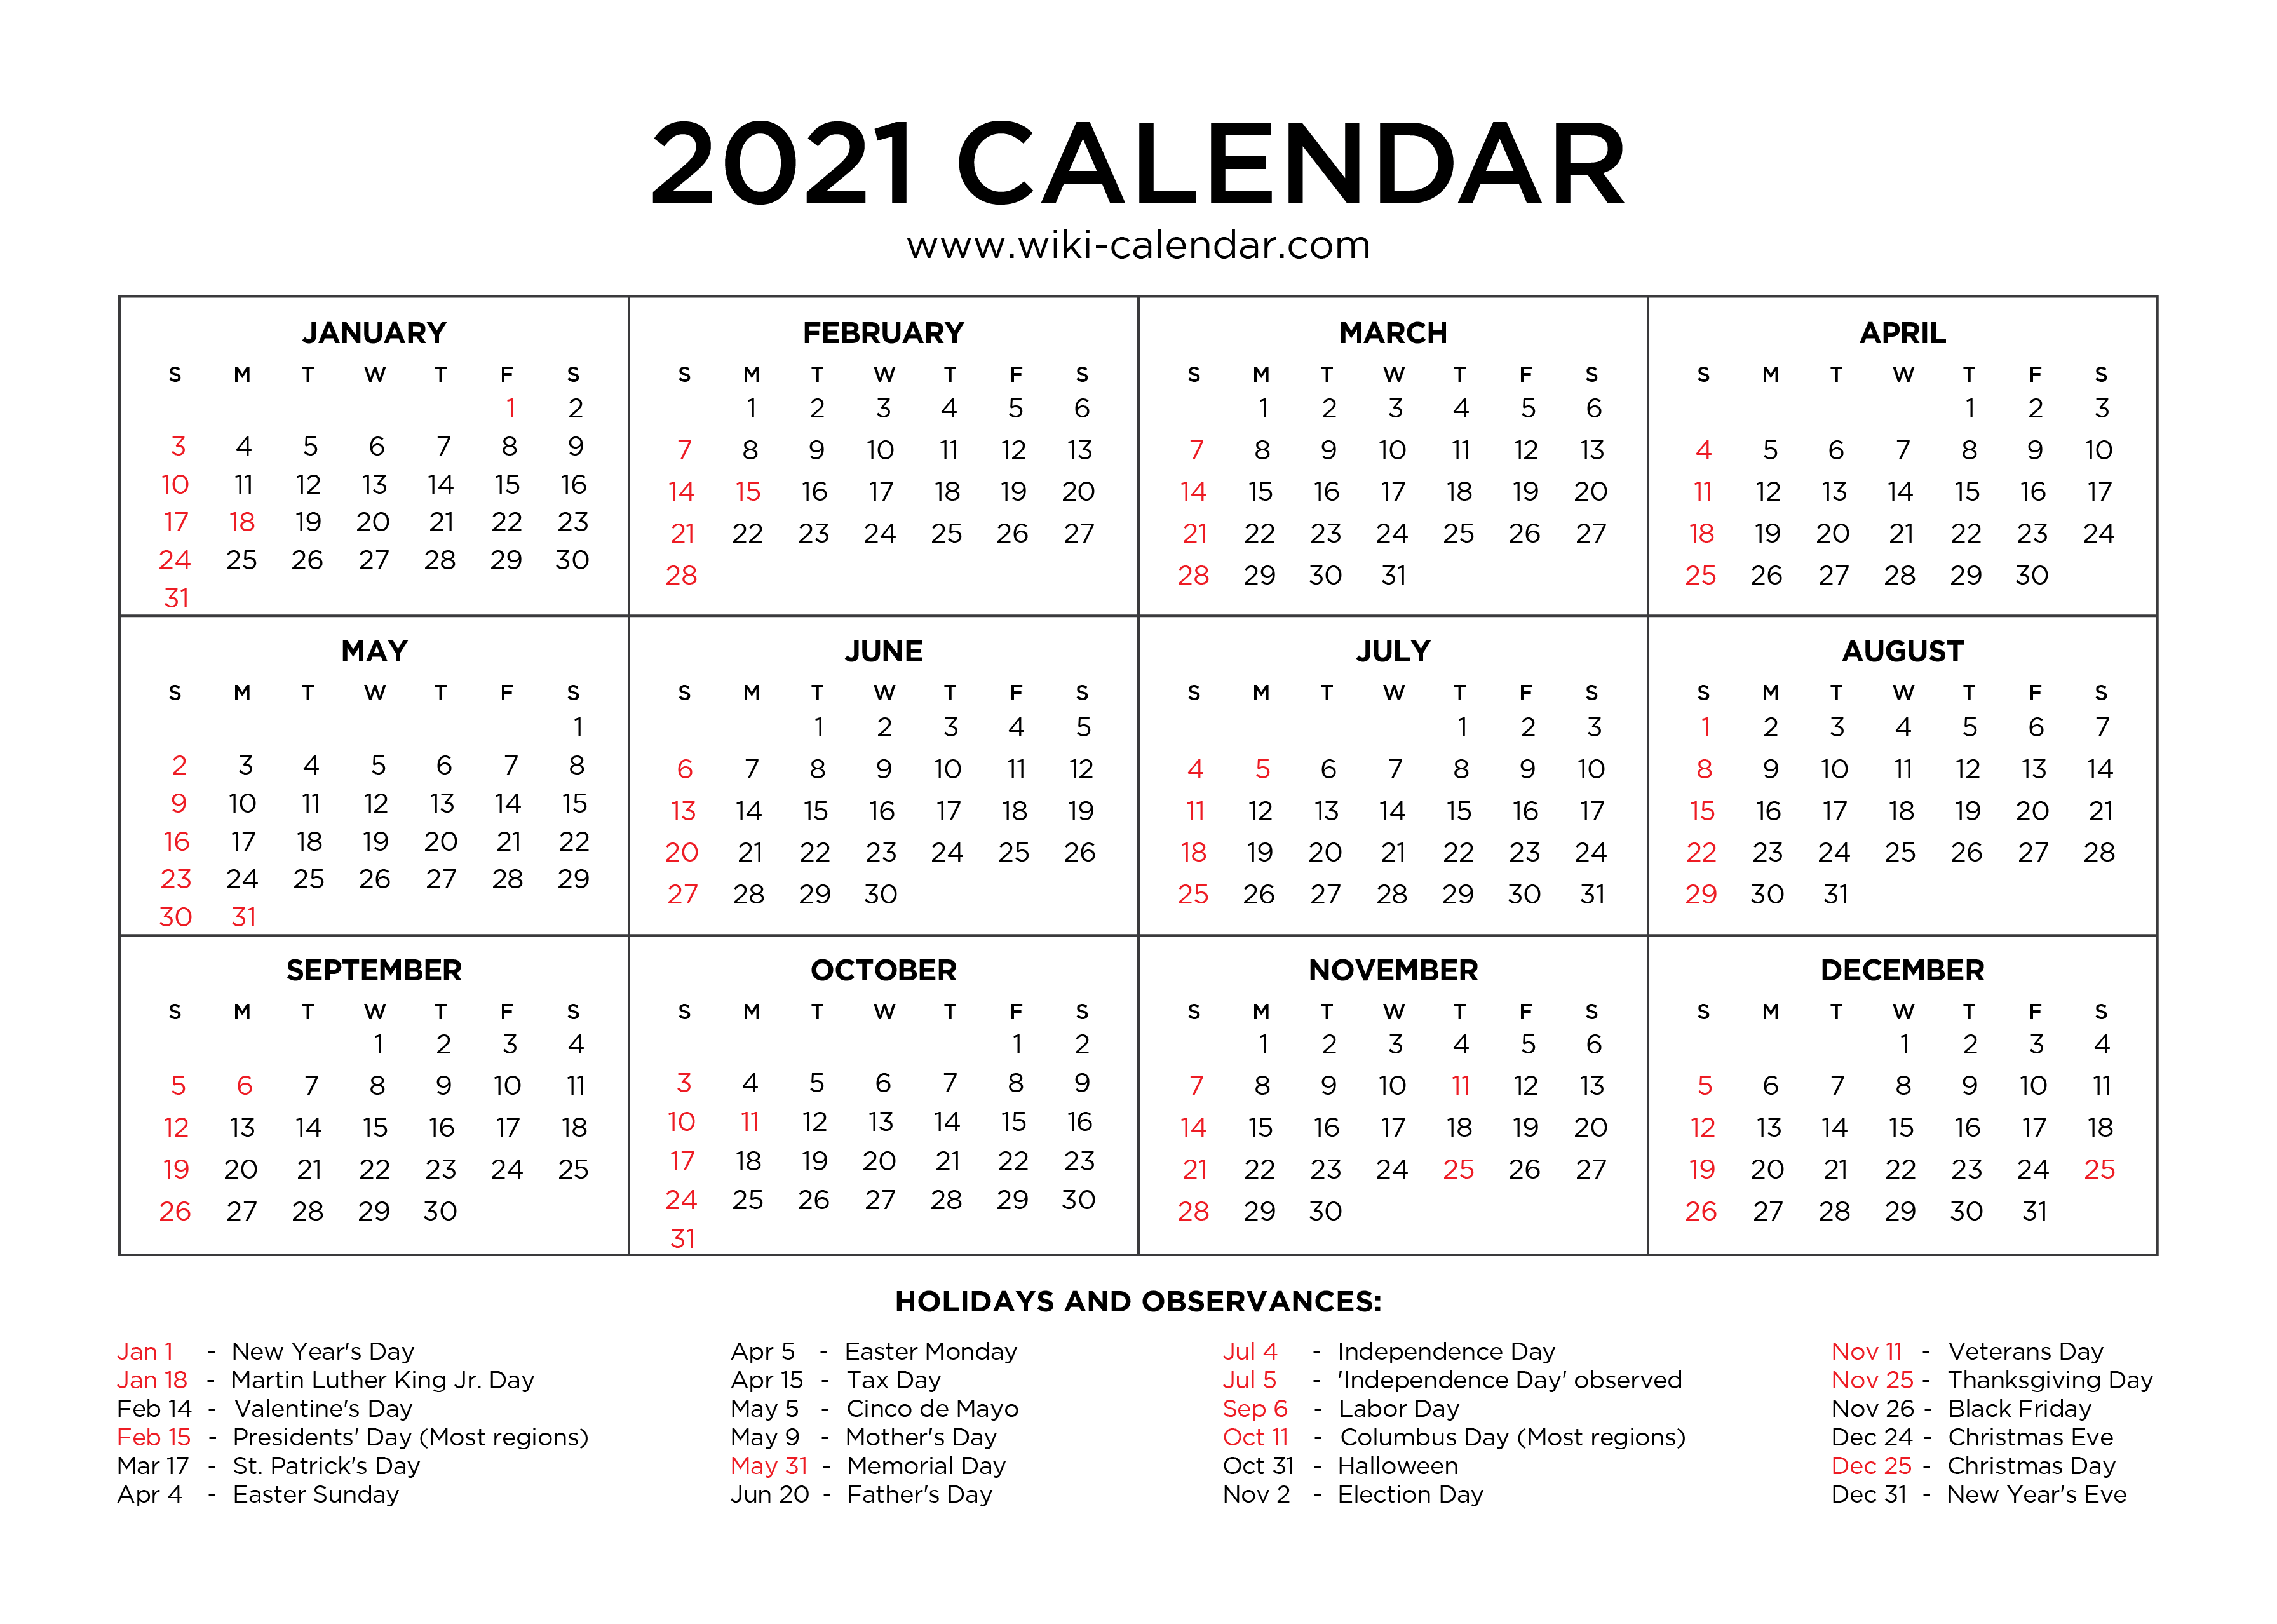 If you haven't done so already, it's time to update last year's custom photo calendar. Free Printable Year 2021 Calendar with Holidays